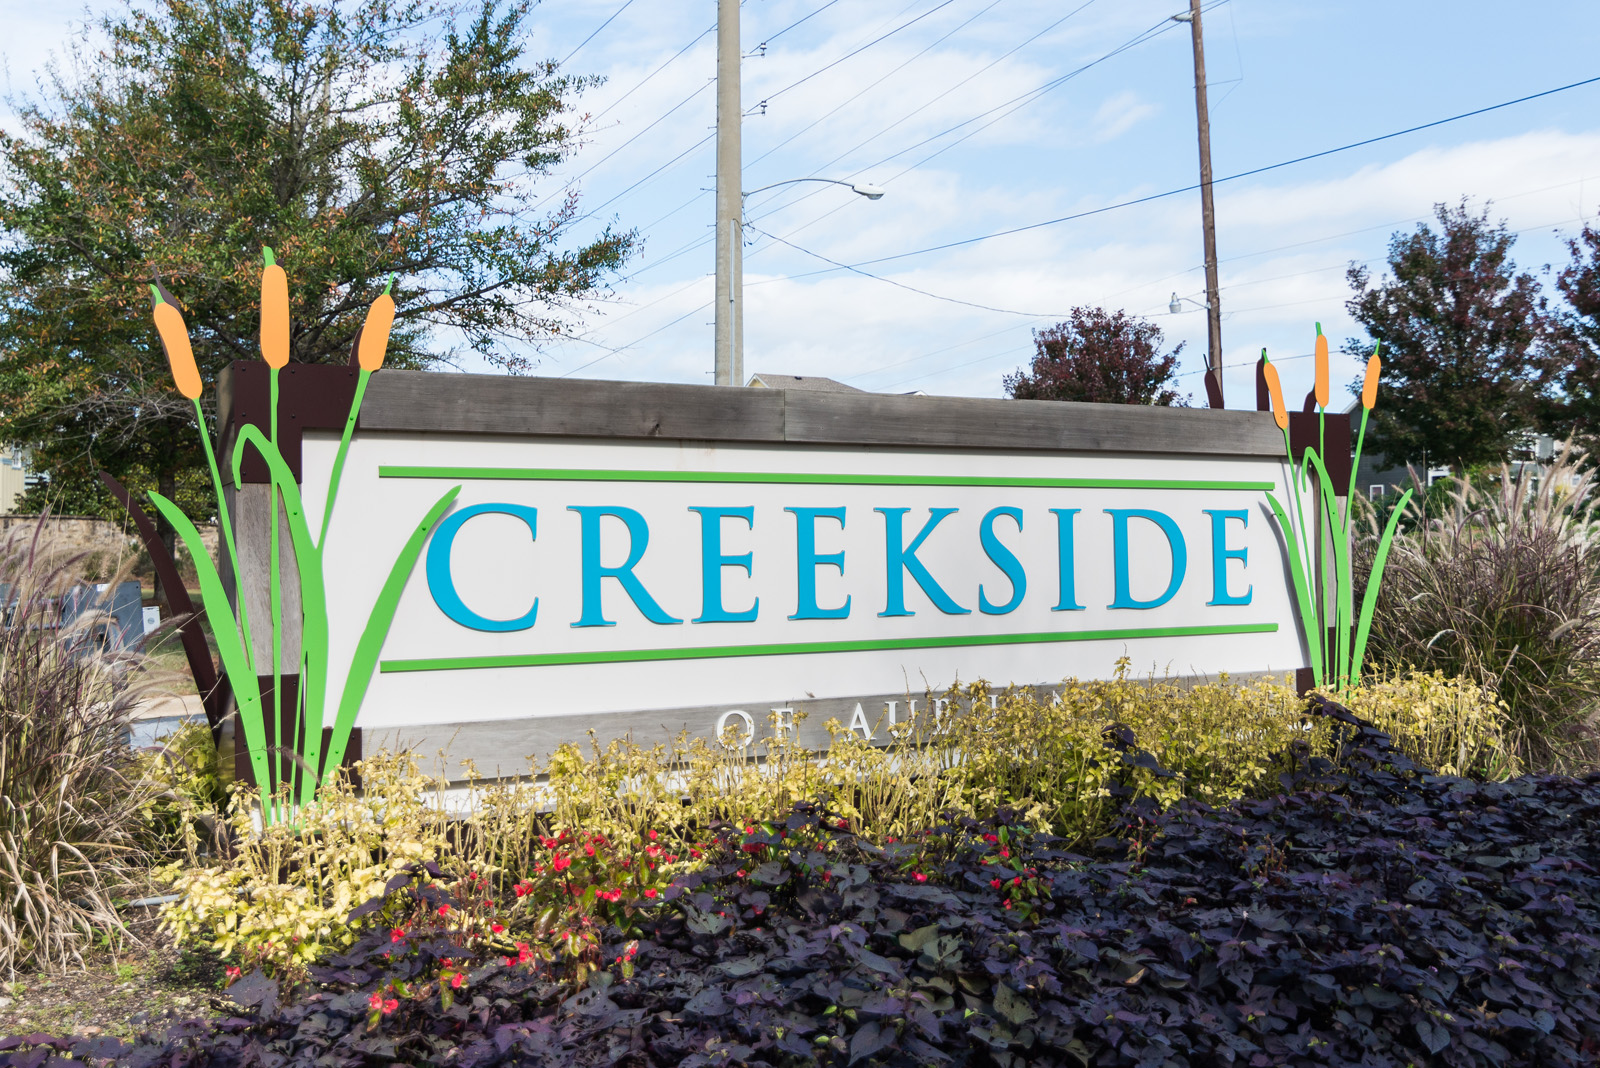 Creekside Entrance